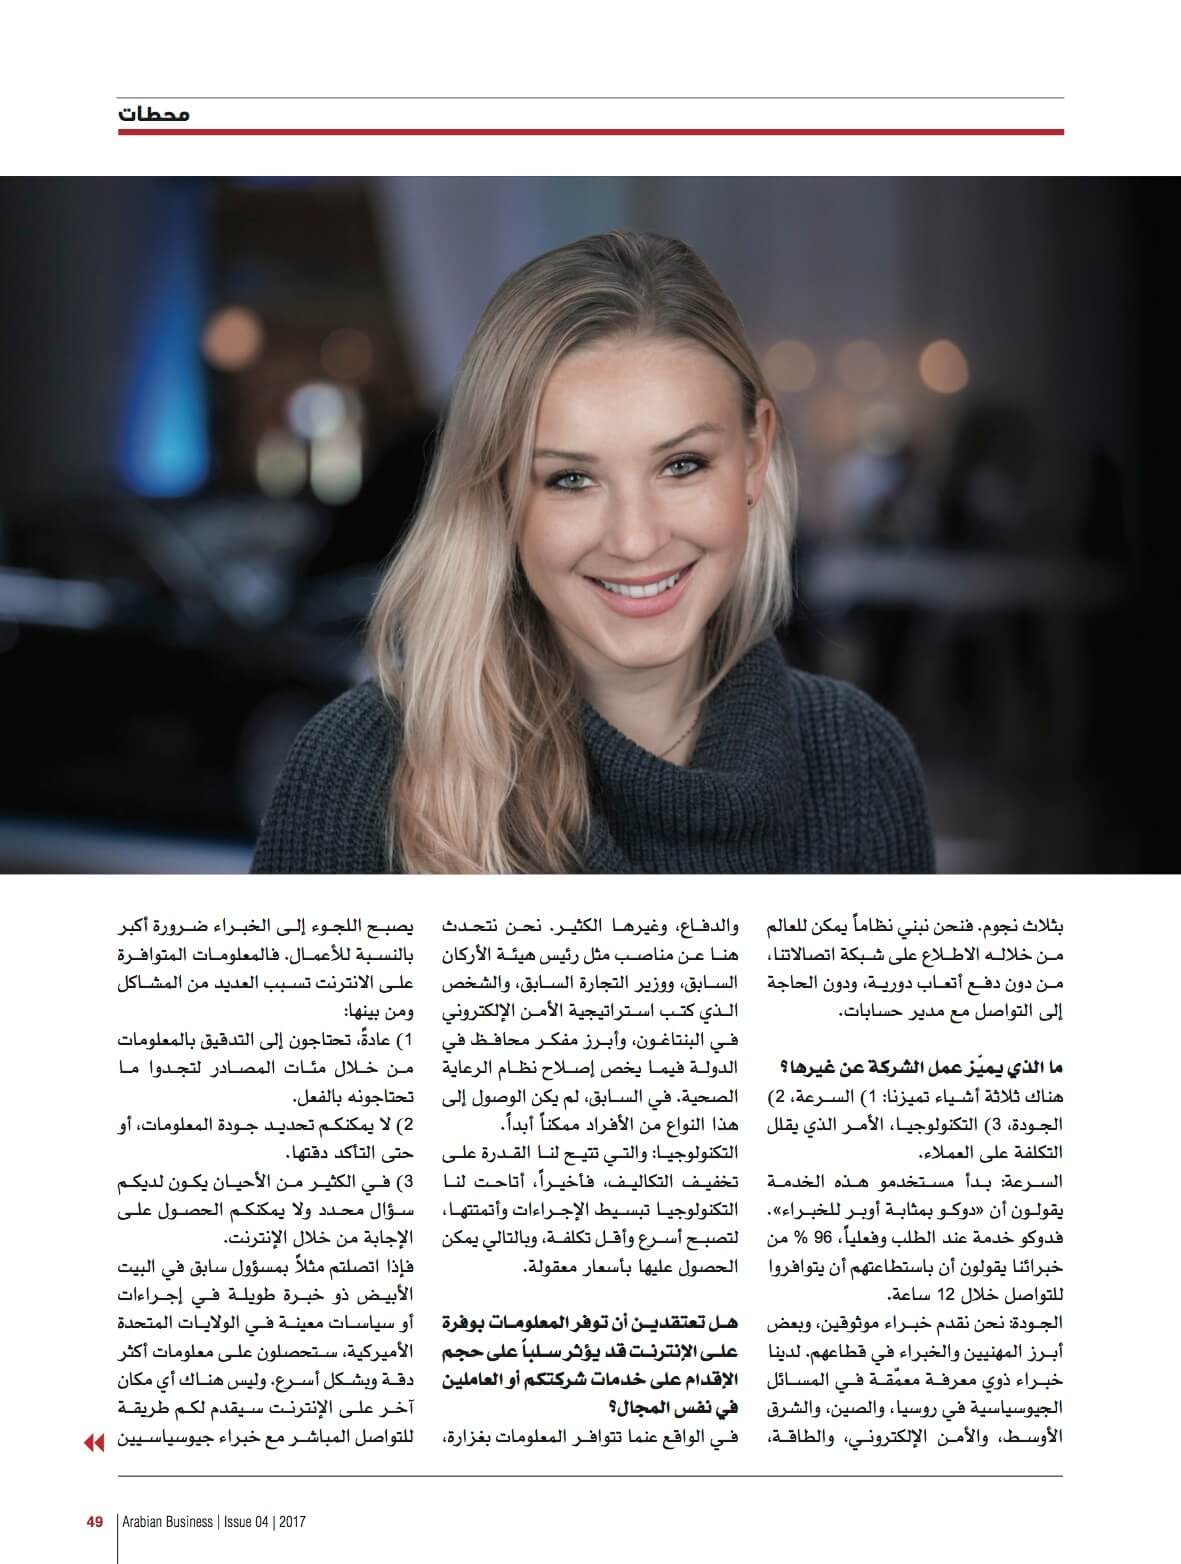 Arabian Business - January - Duco Beta - Page 48-51 copy